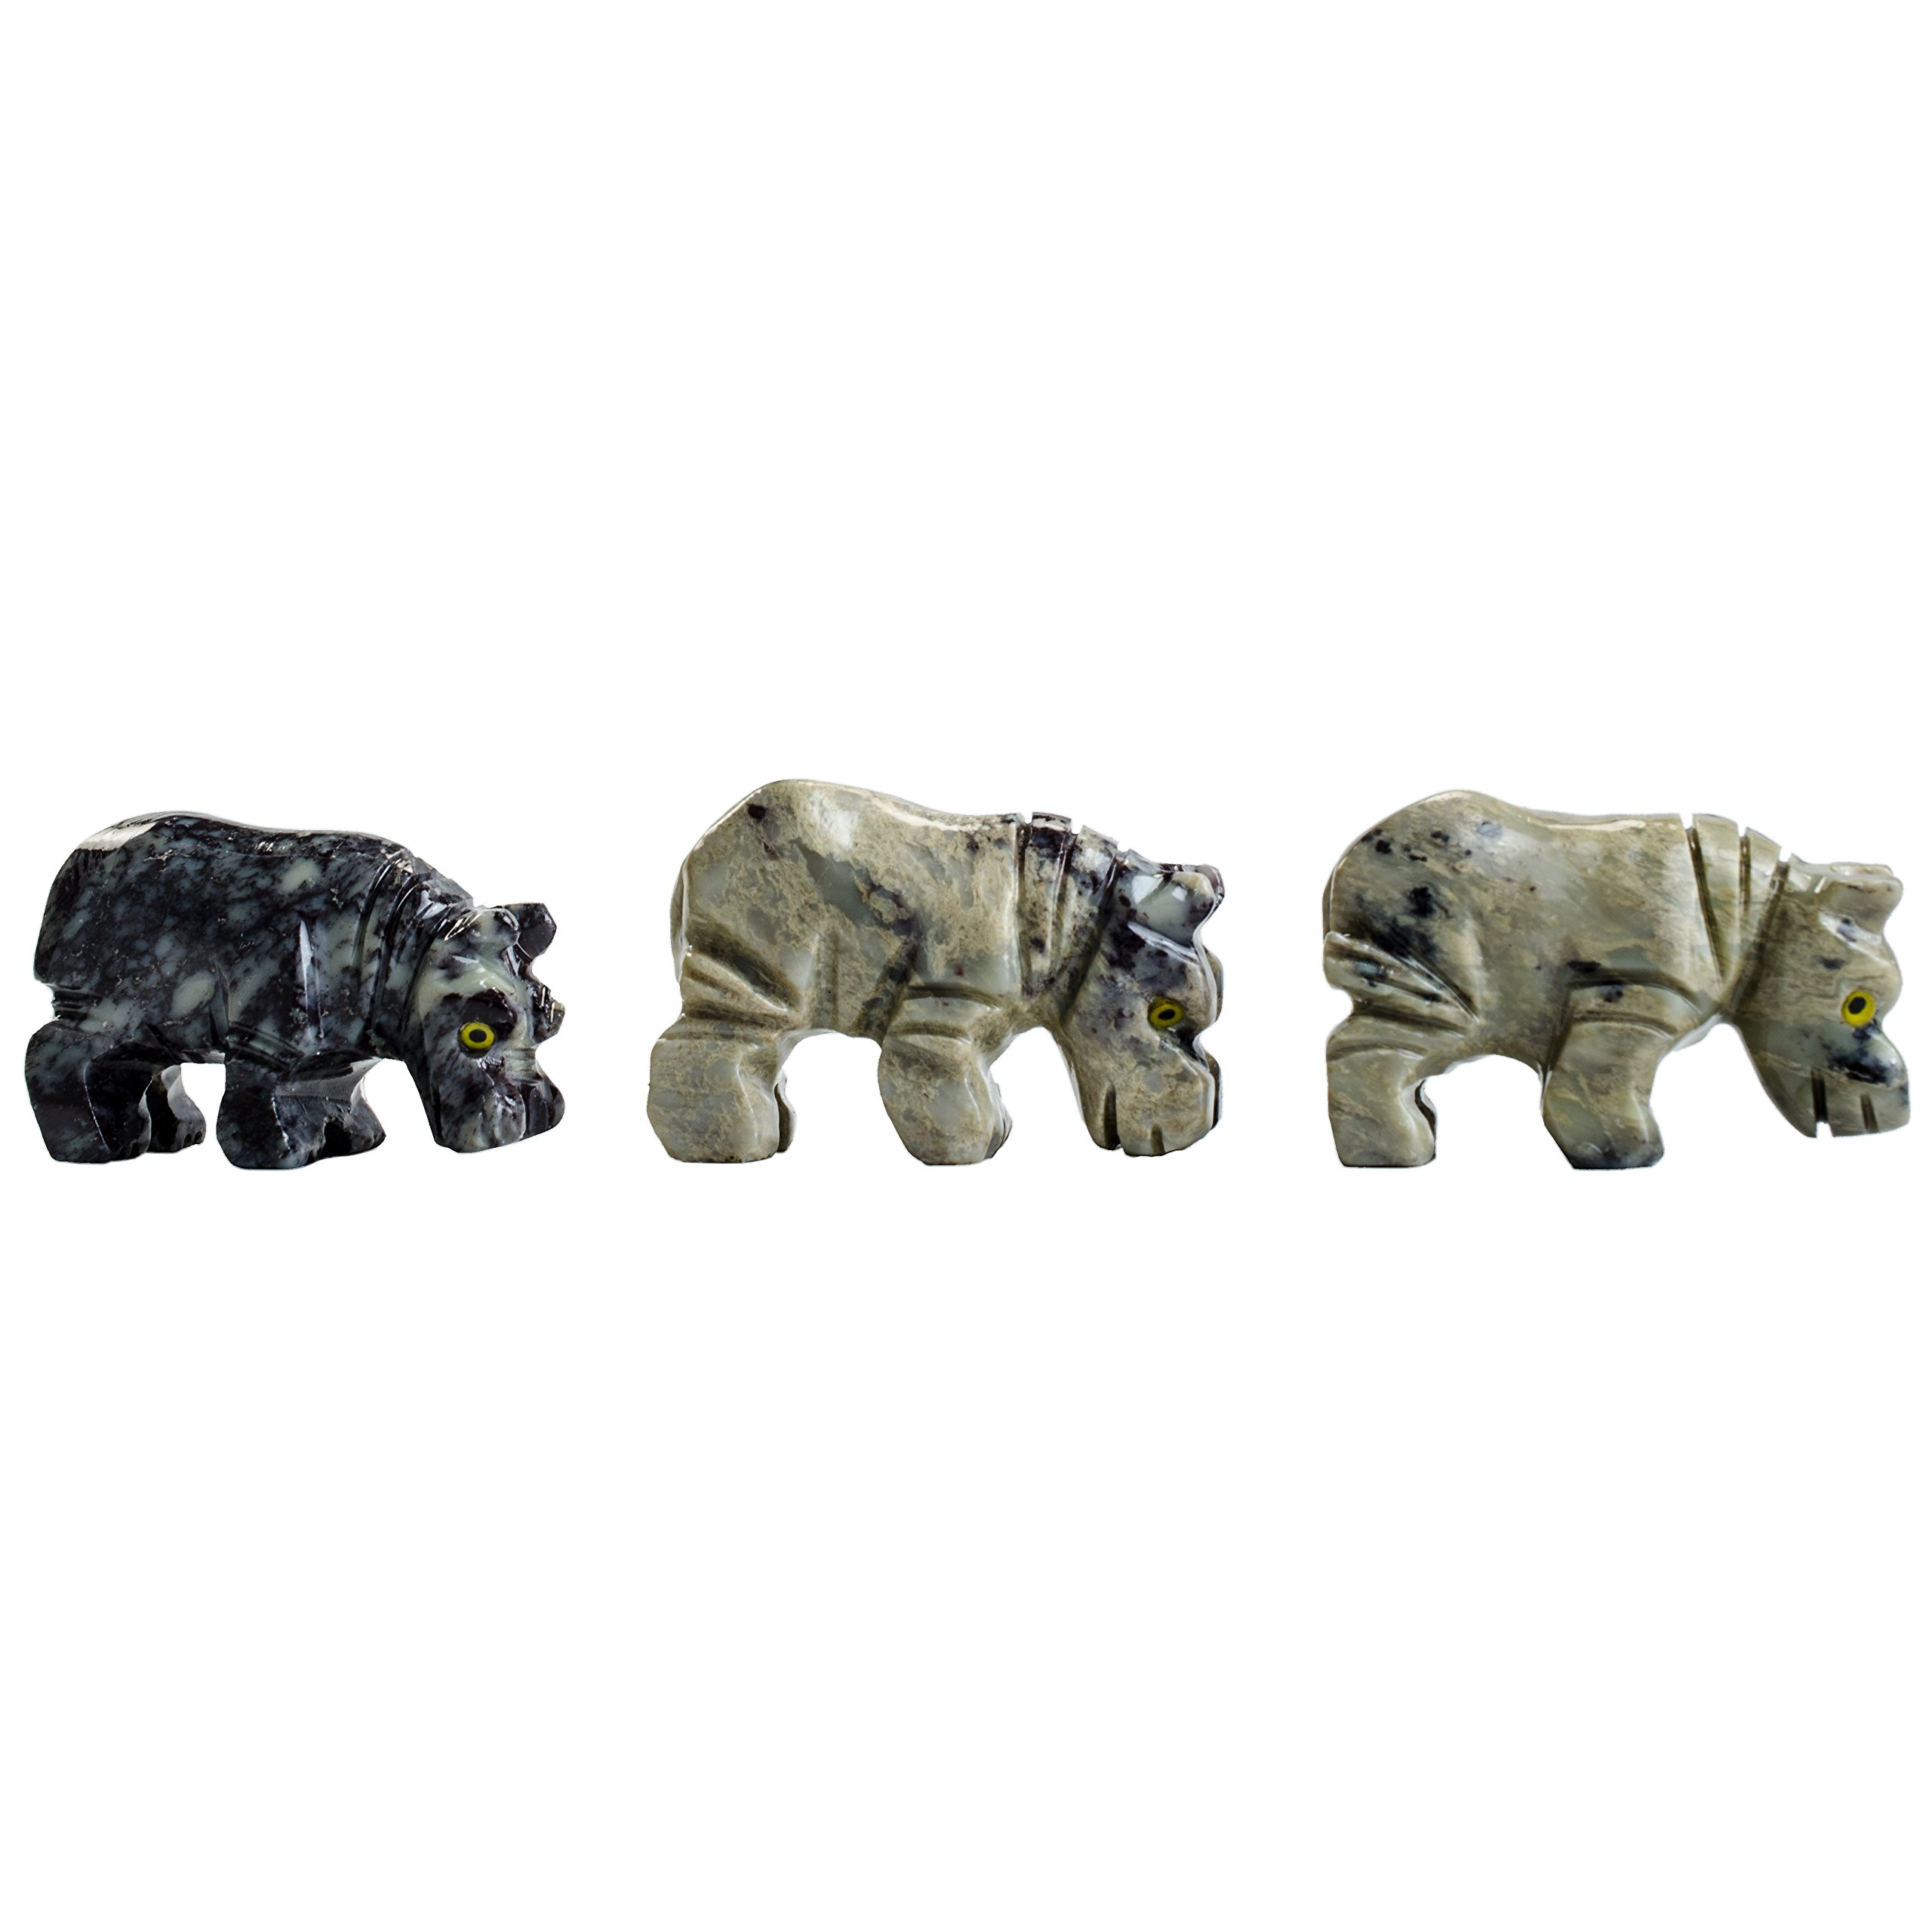 Hypnotic Gems Carvings: 10 pcs Hand Carved Hippo Collectable Animal Figurine - Beautiful Unique Stone Carvings for Gifts, Party Favors, Jewelry Making, and More!